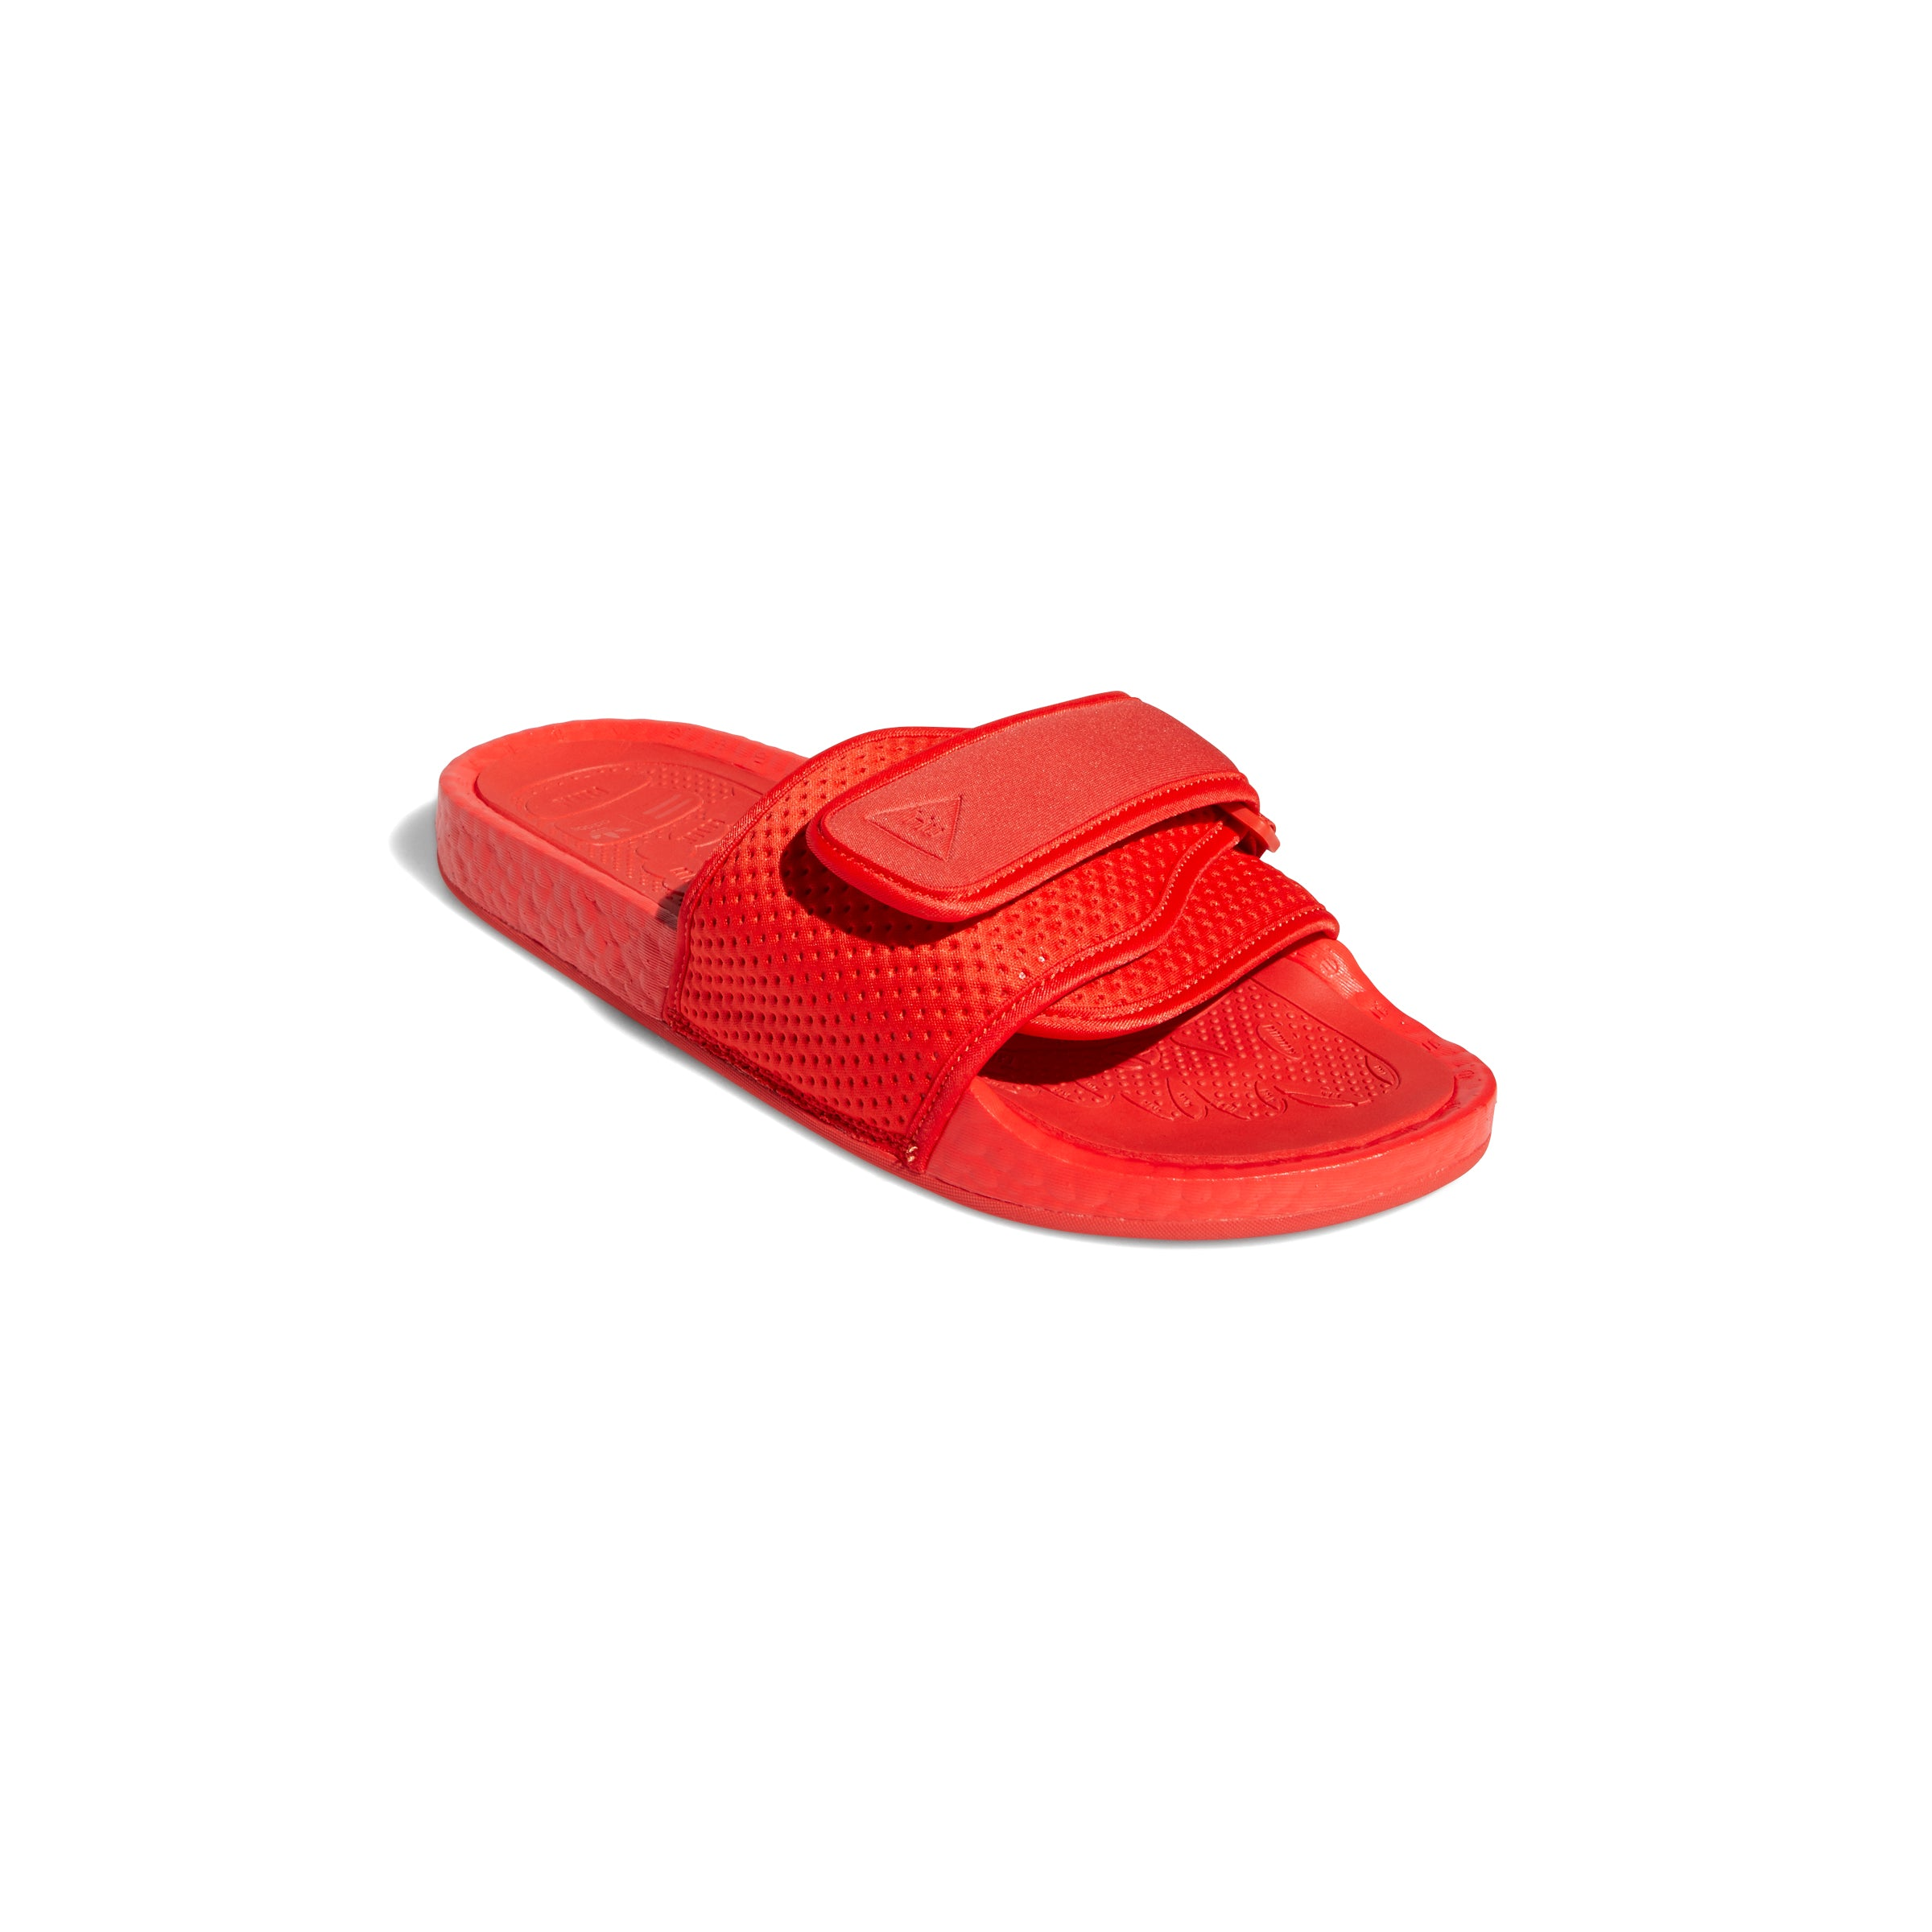 PW BOOST SLIDE-RED